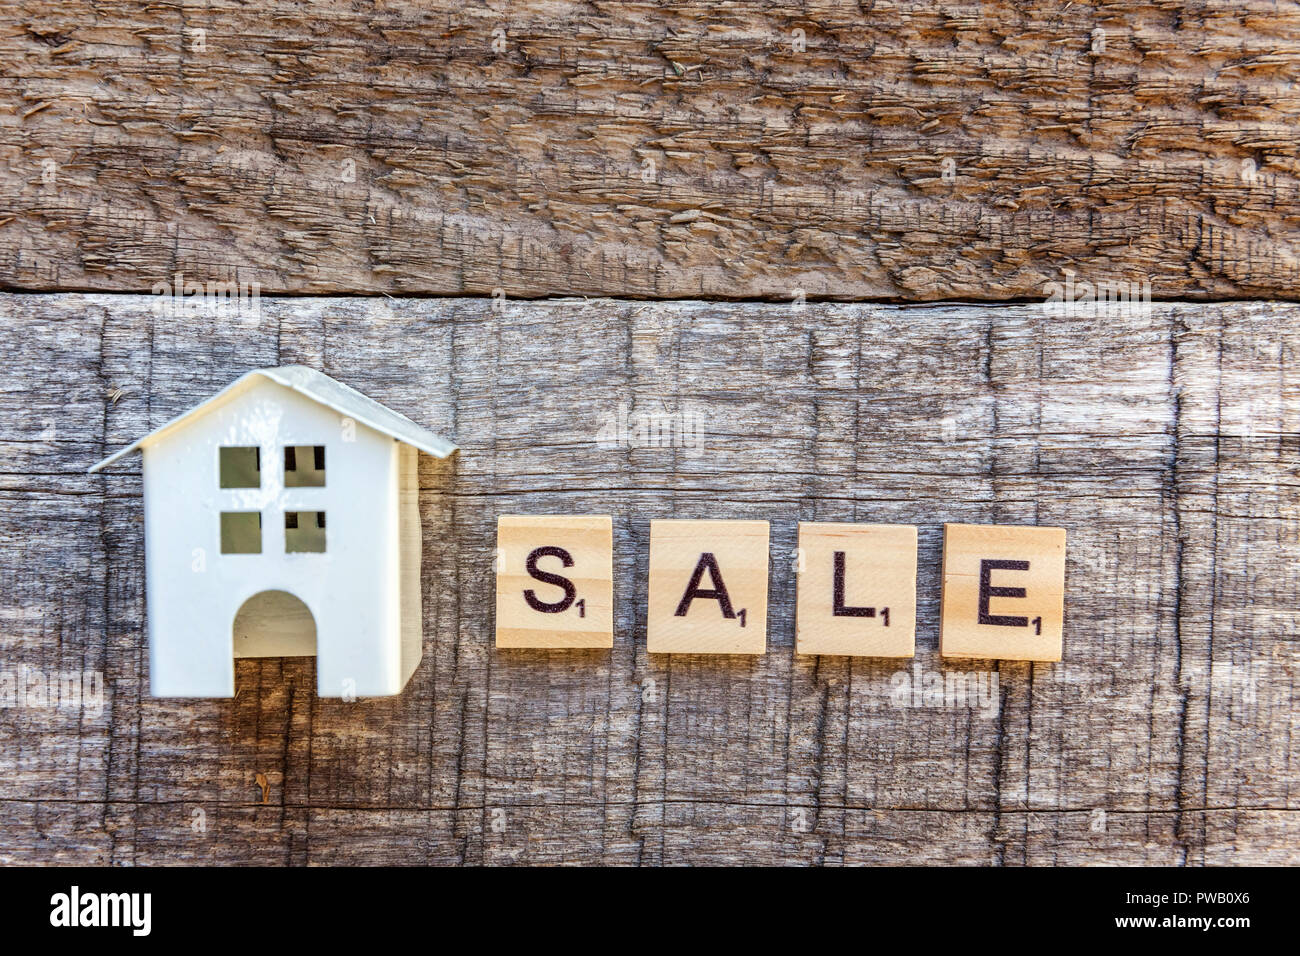 Miniature toy model house with inscription SALE letters word on wooden backdrop. Eco Village, abstract environmental background. Real estate mortgage  - Stock Image